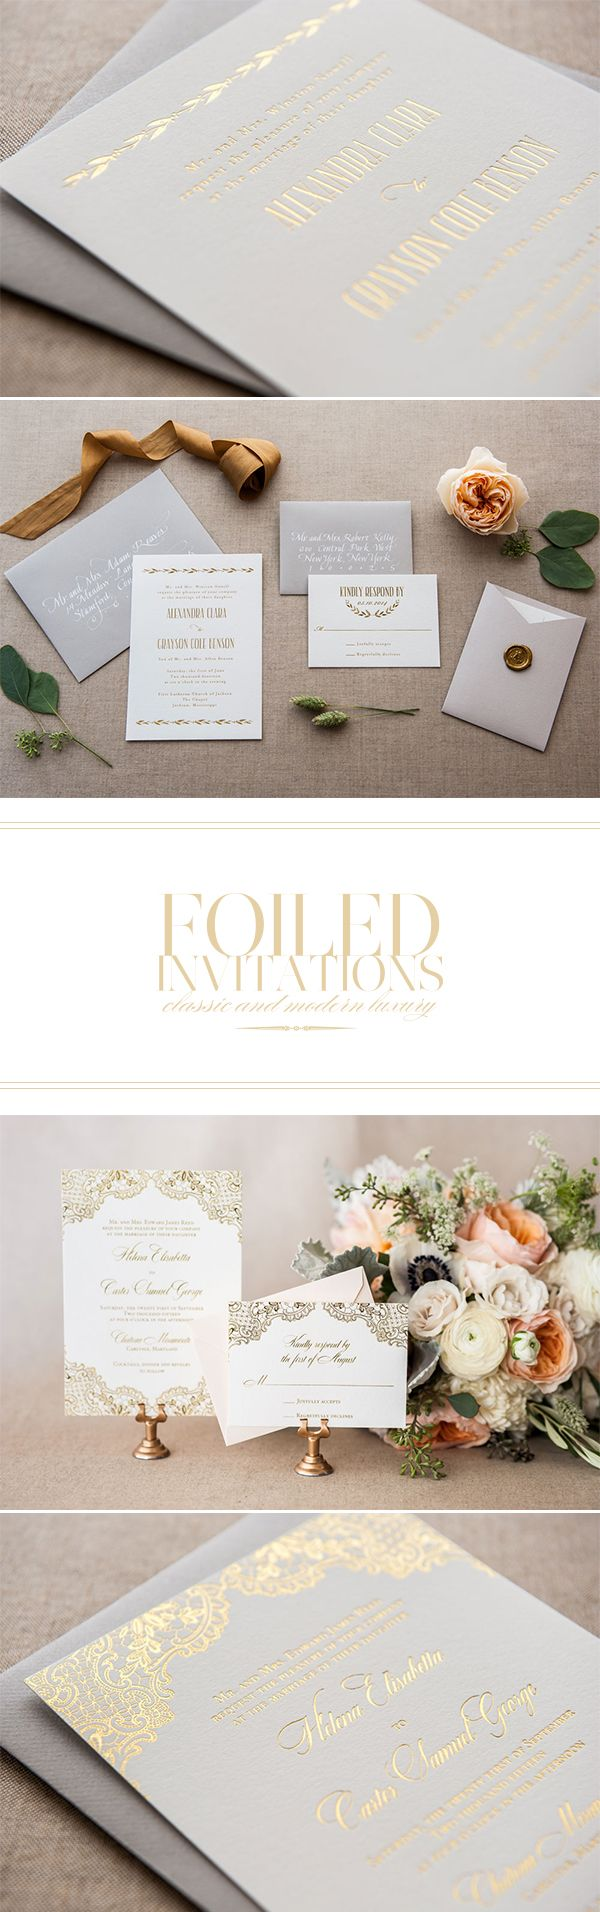 Win an Invitation Suite from Foiled Invitations